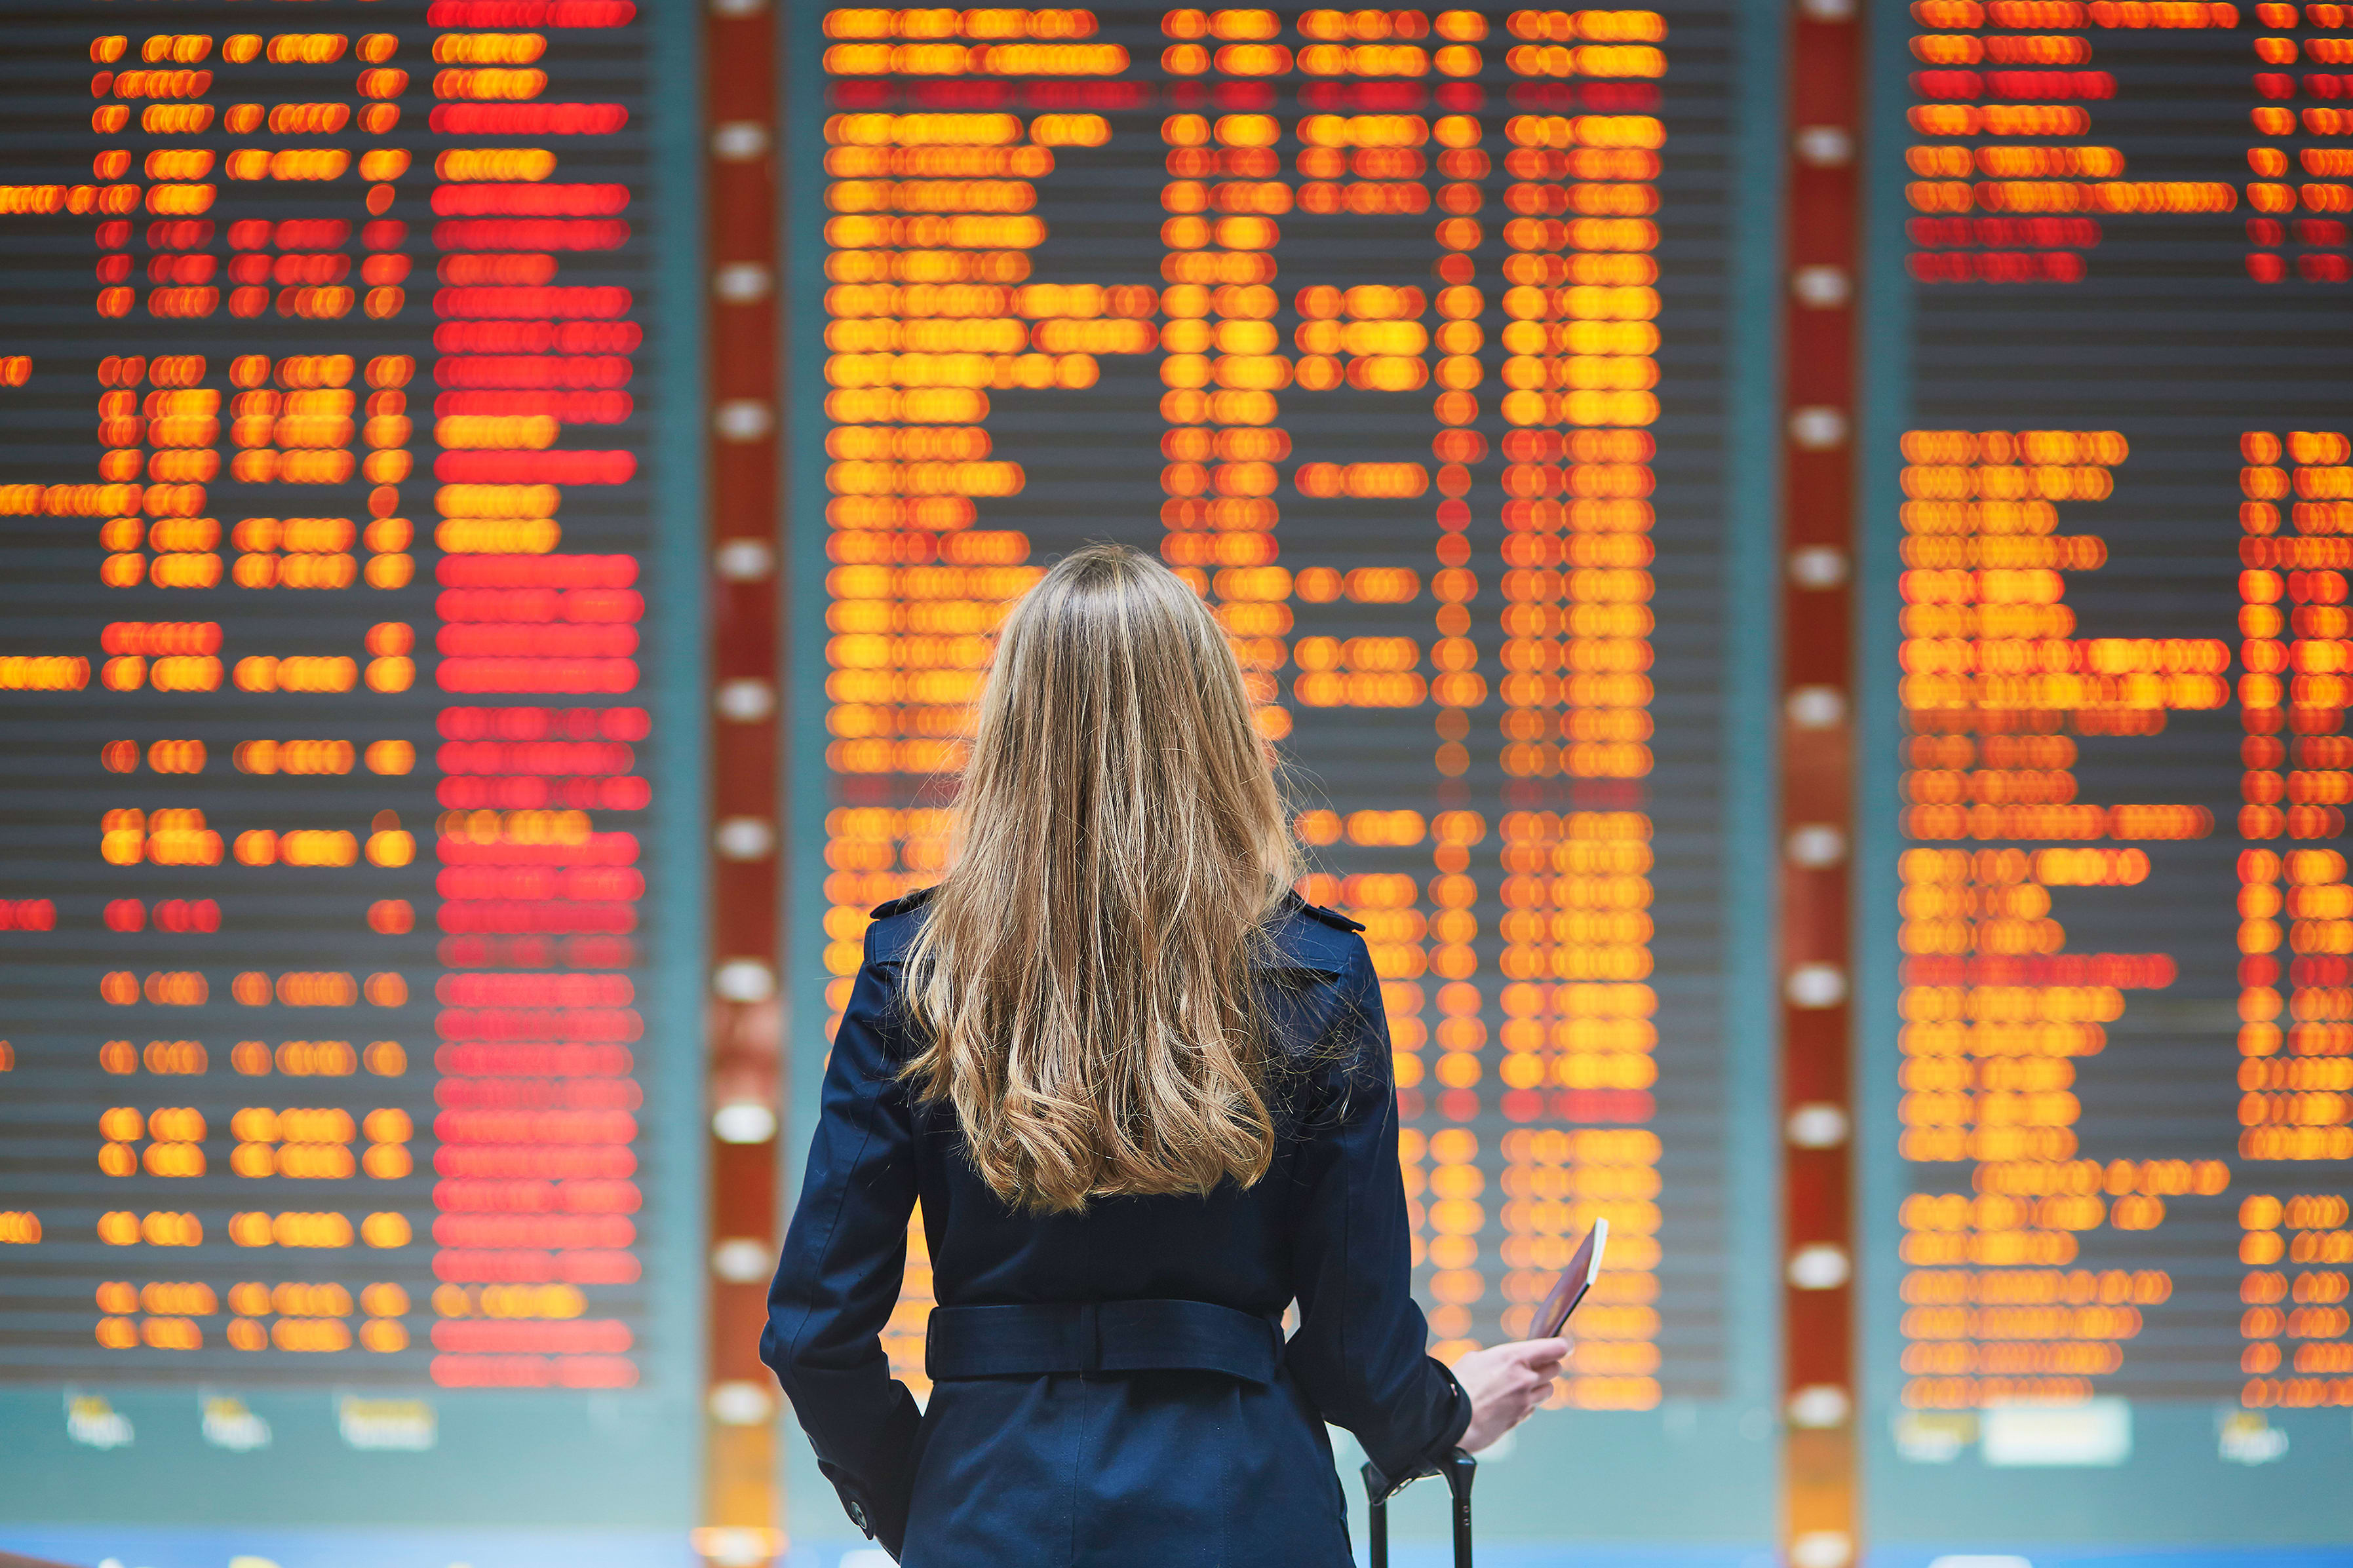 Make your guests' flight delays less traveling